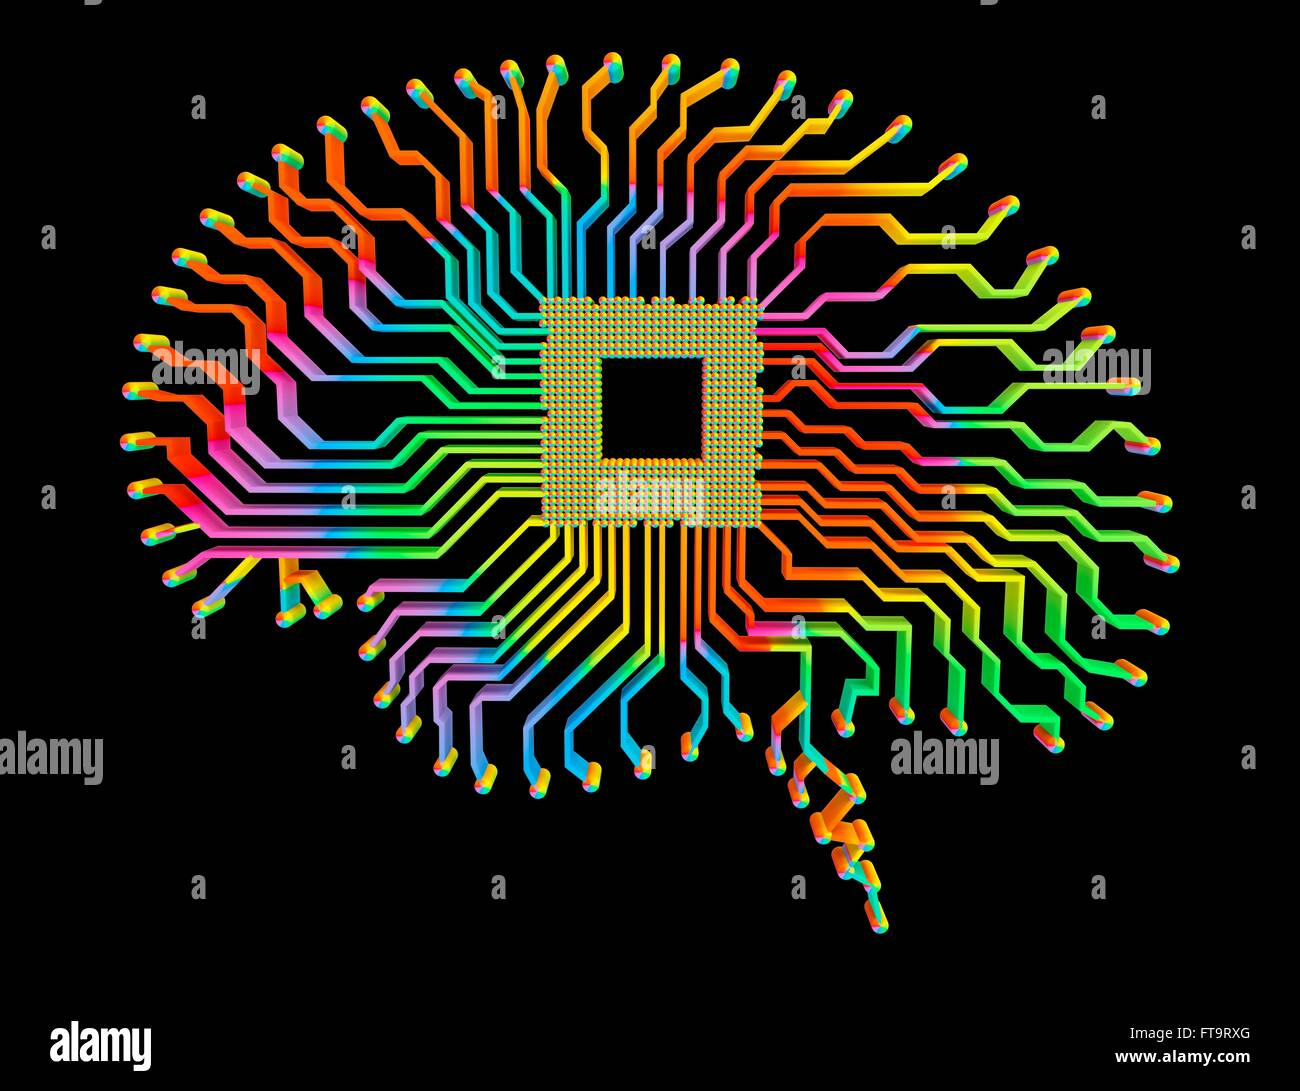 Printed Circuit Board Ics Chip Stock Photos Detail Of A Royalty Free Image Illustration Brain Shaped